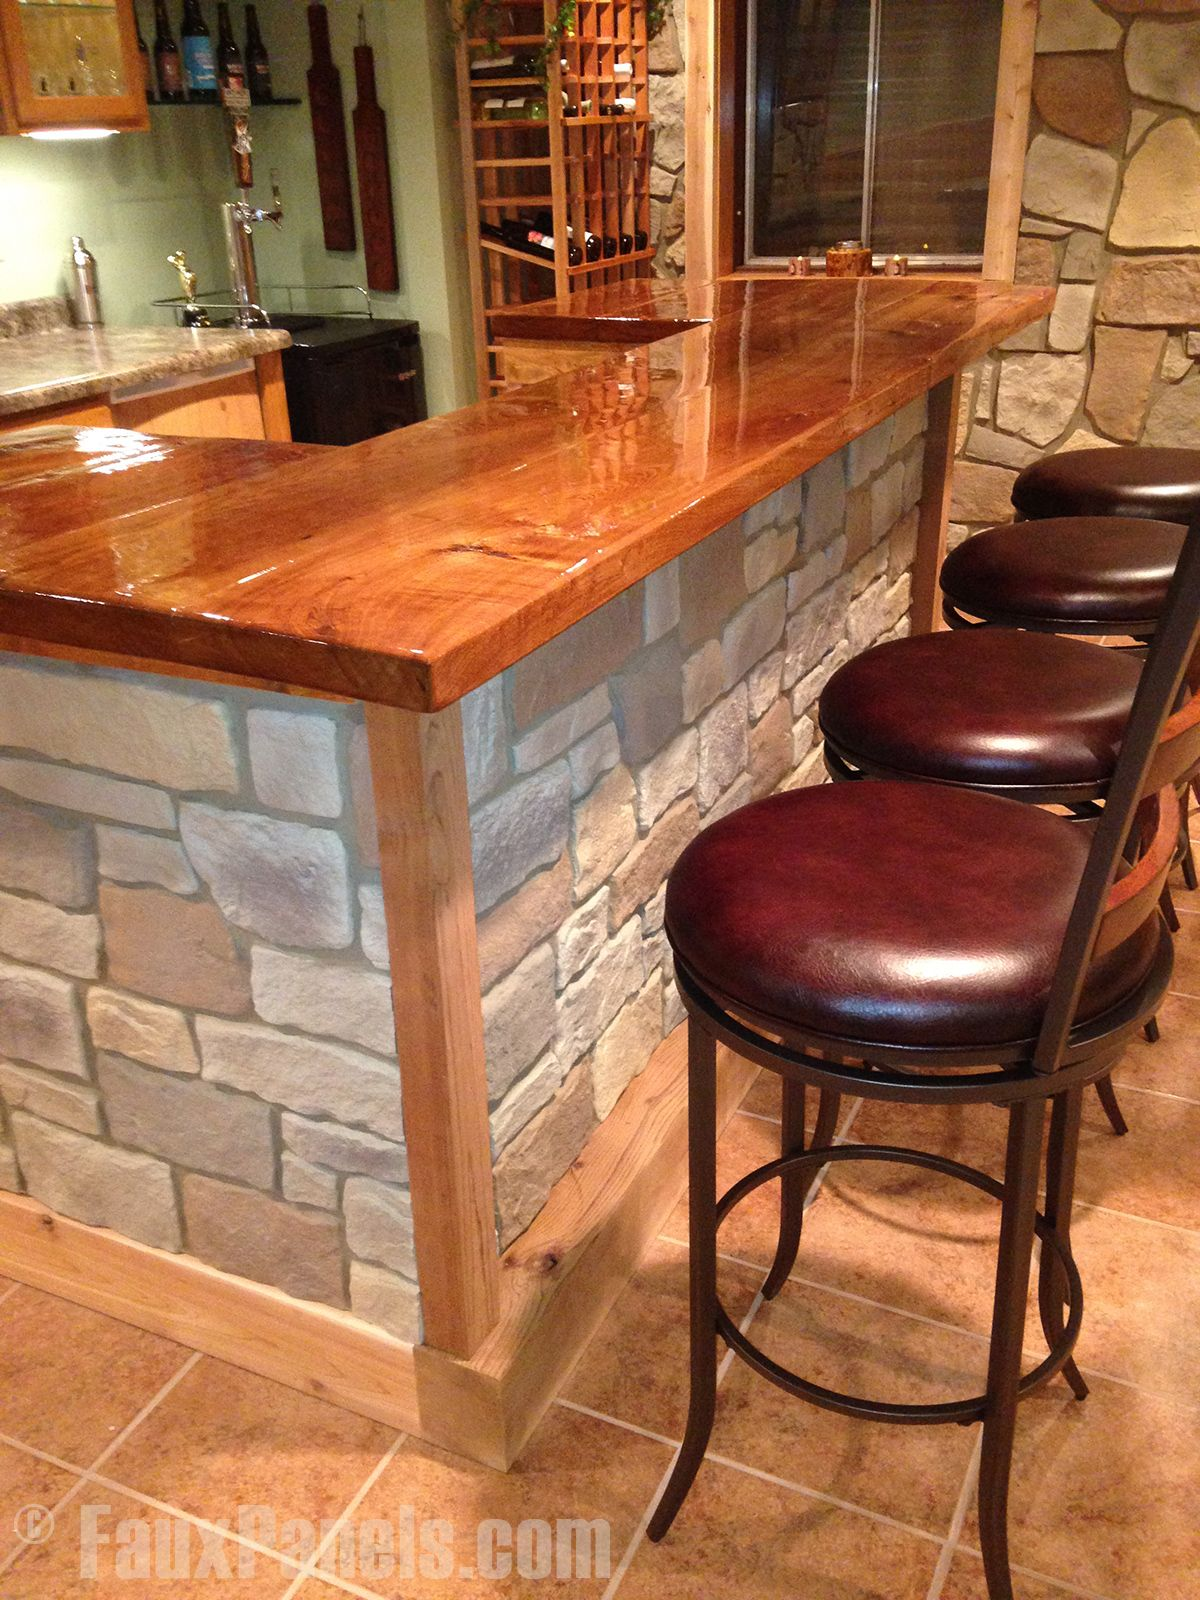 Home Bar Pictures | Design Ideas for Your Home Bar Plans | Best ...